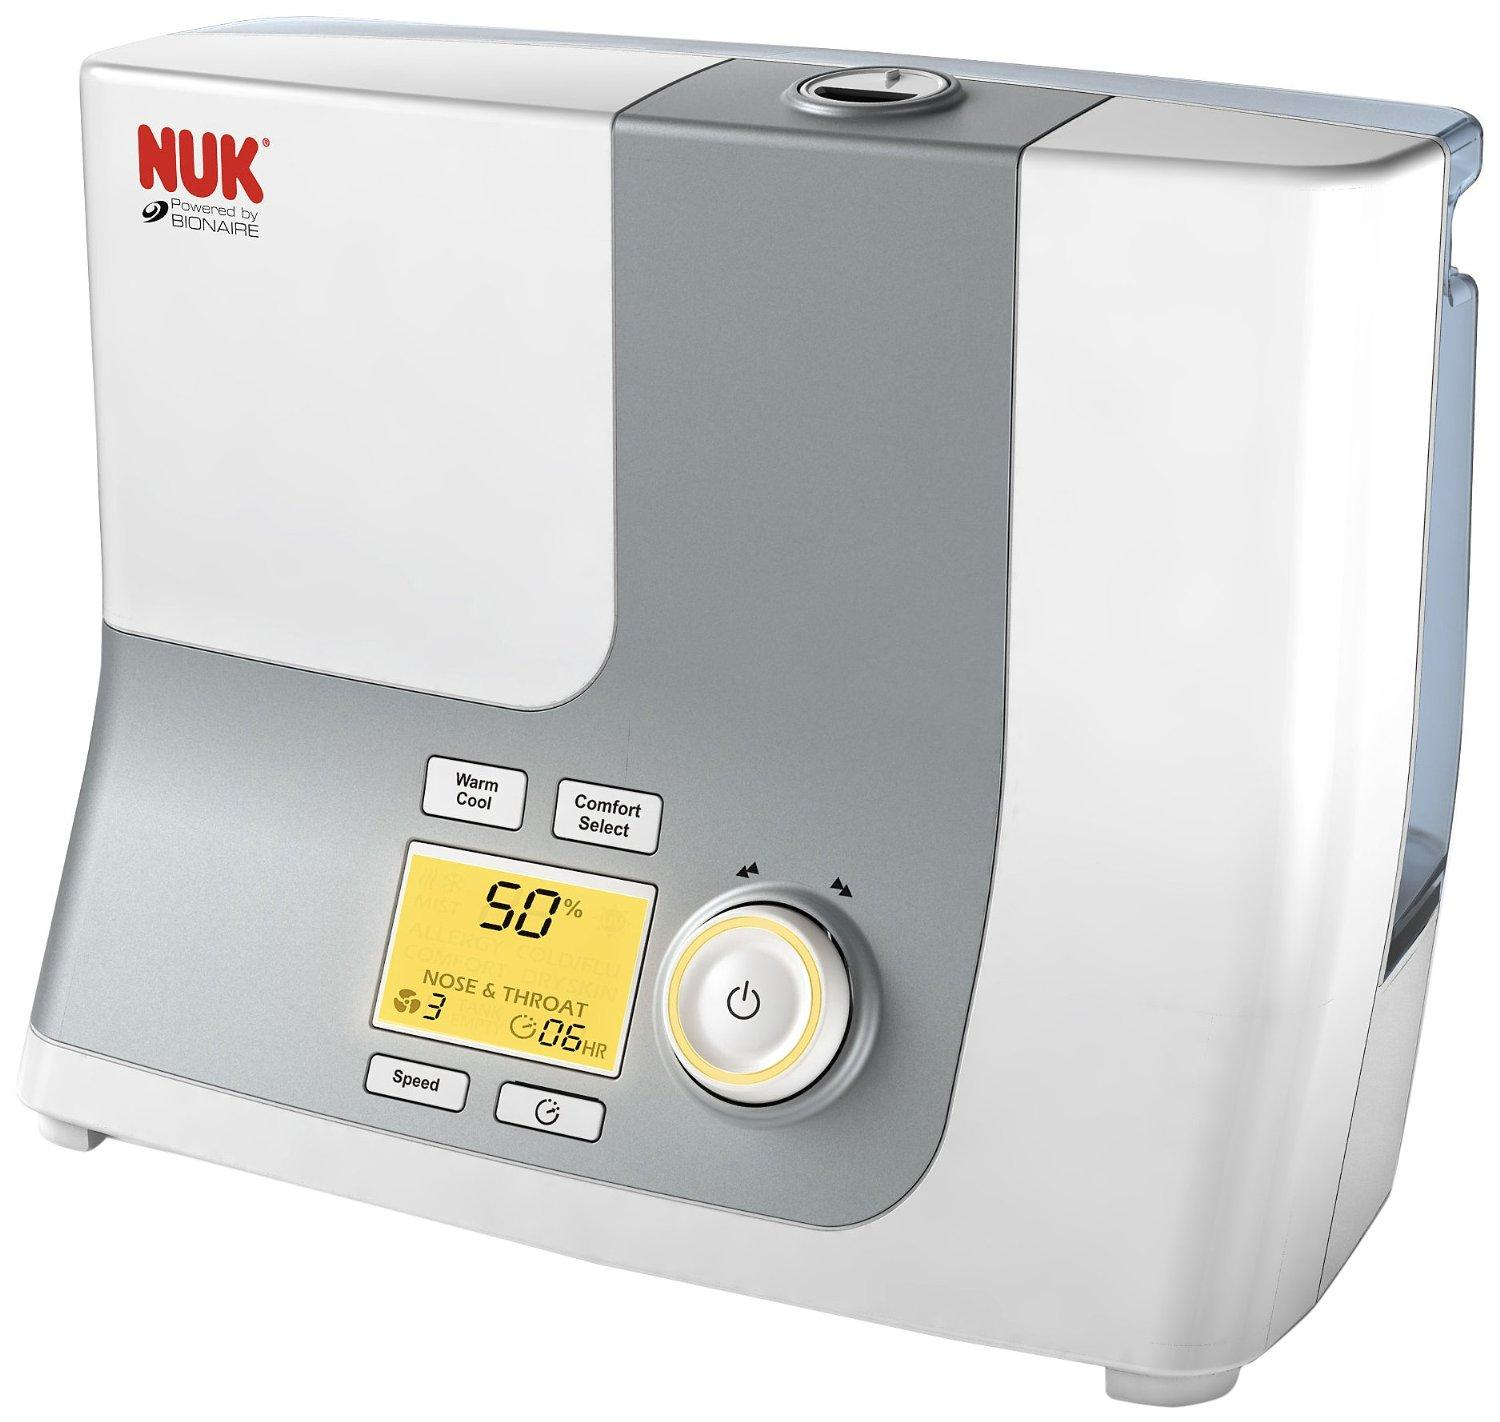 Amazon.com: NUK Warm and Cool Mist Ultrasonic Humidifier: Baby #BD9C0E